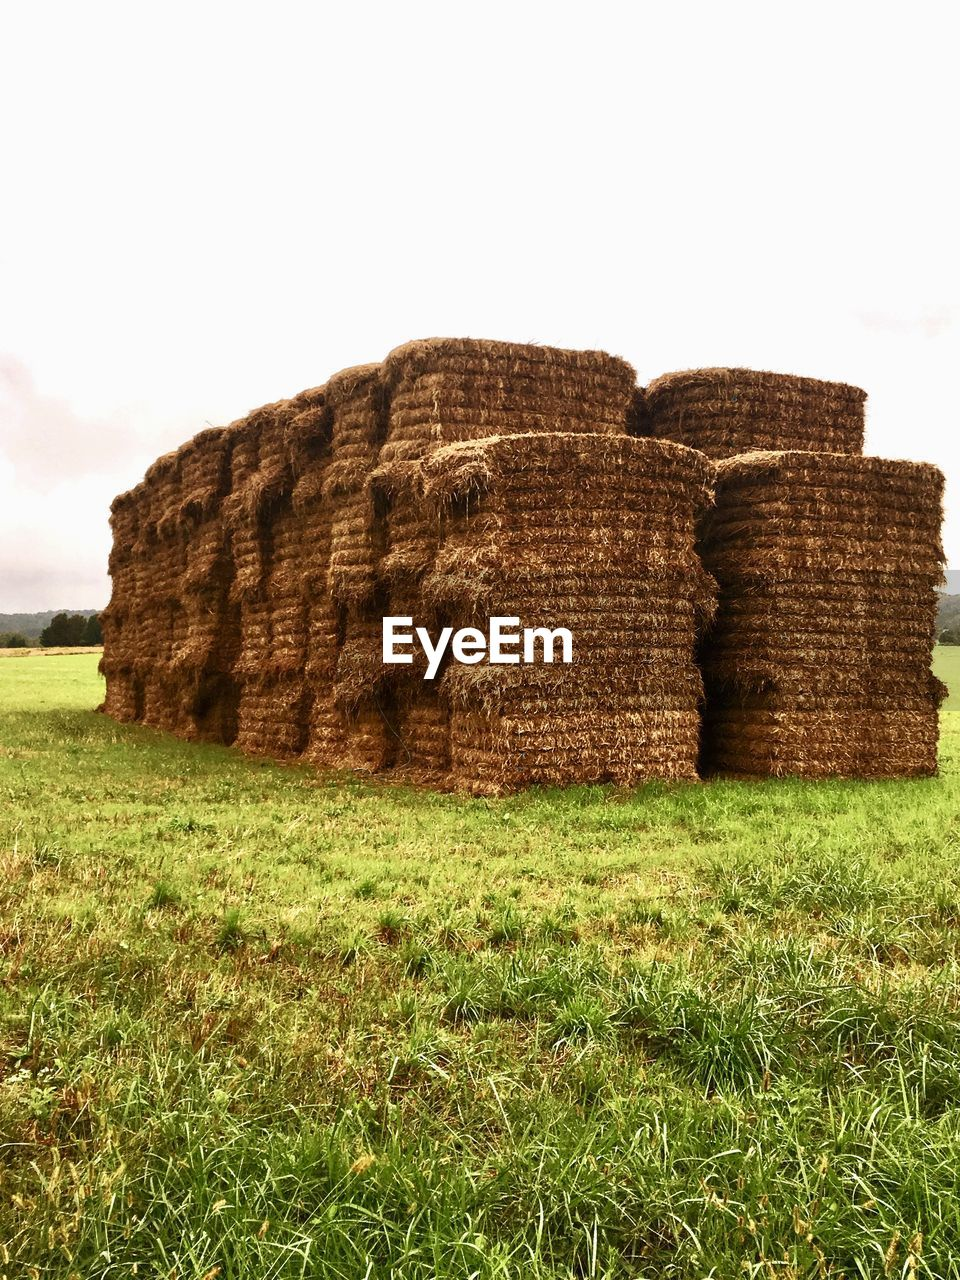 land, grass, plant, field, nature, sky, environment, stack, landscape, bale, hay, haystack, agriculture, rural scene, day, farm, no people, tranquil scene, tranquility, clear sky, outdoors